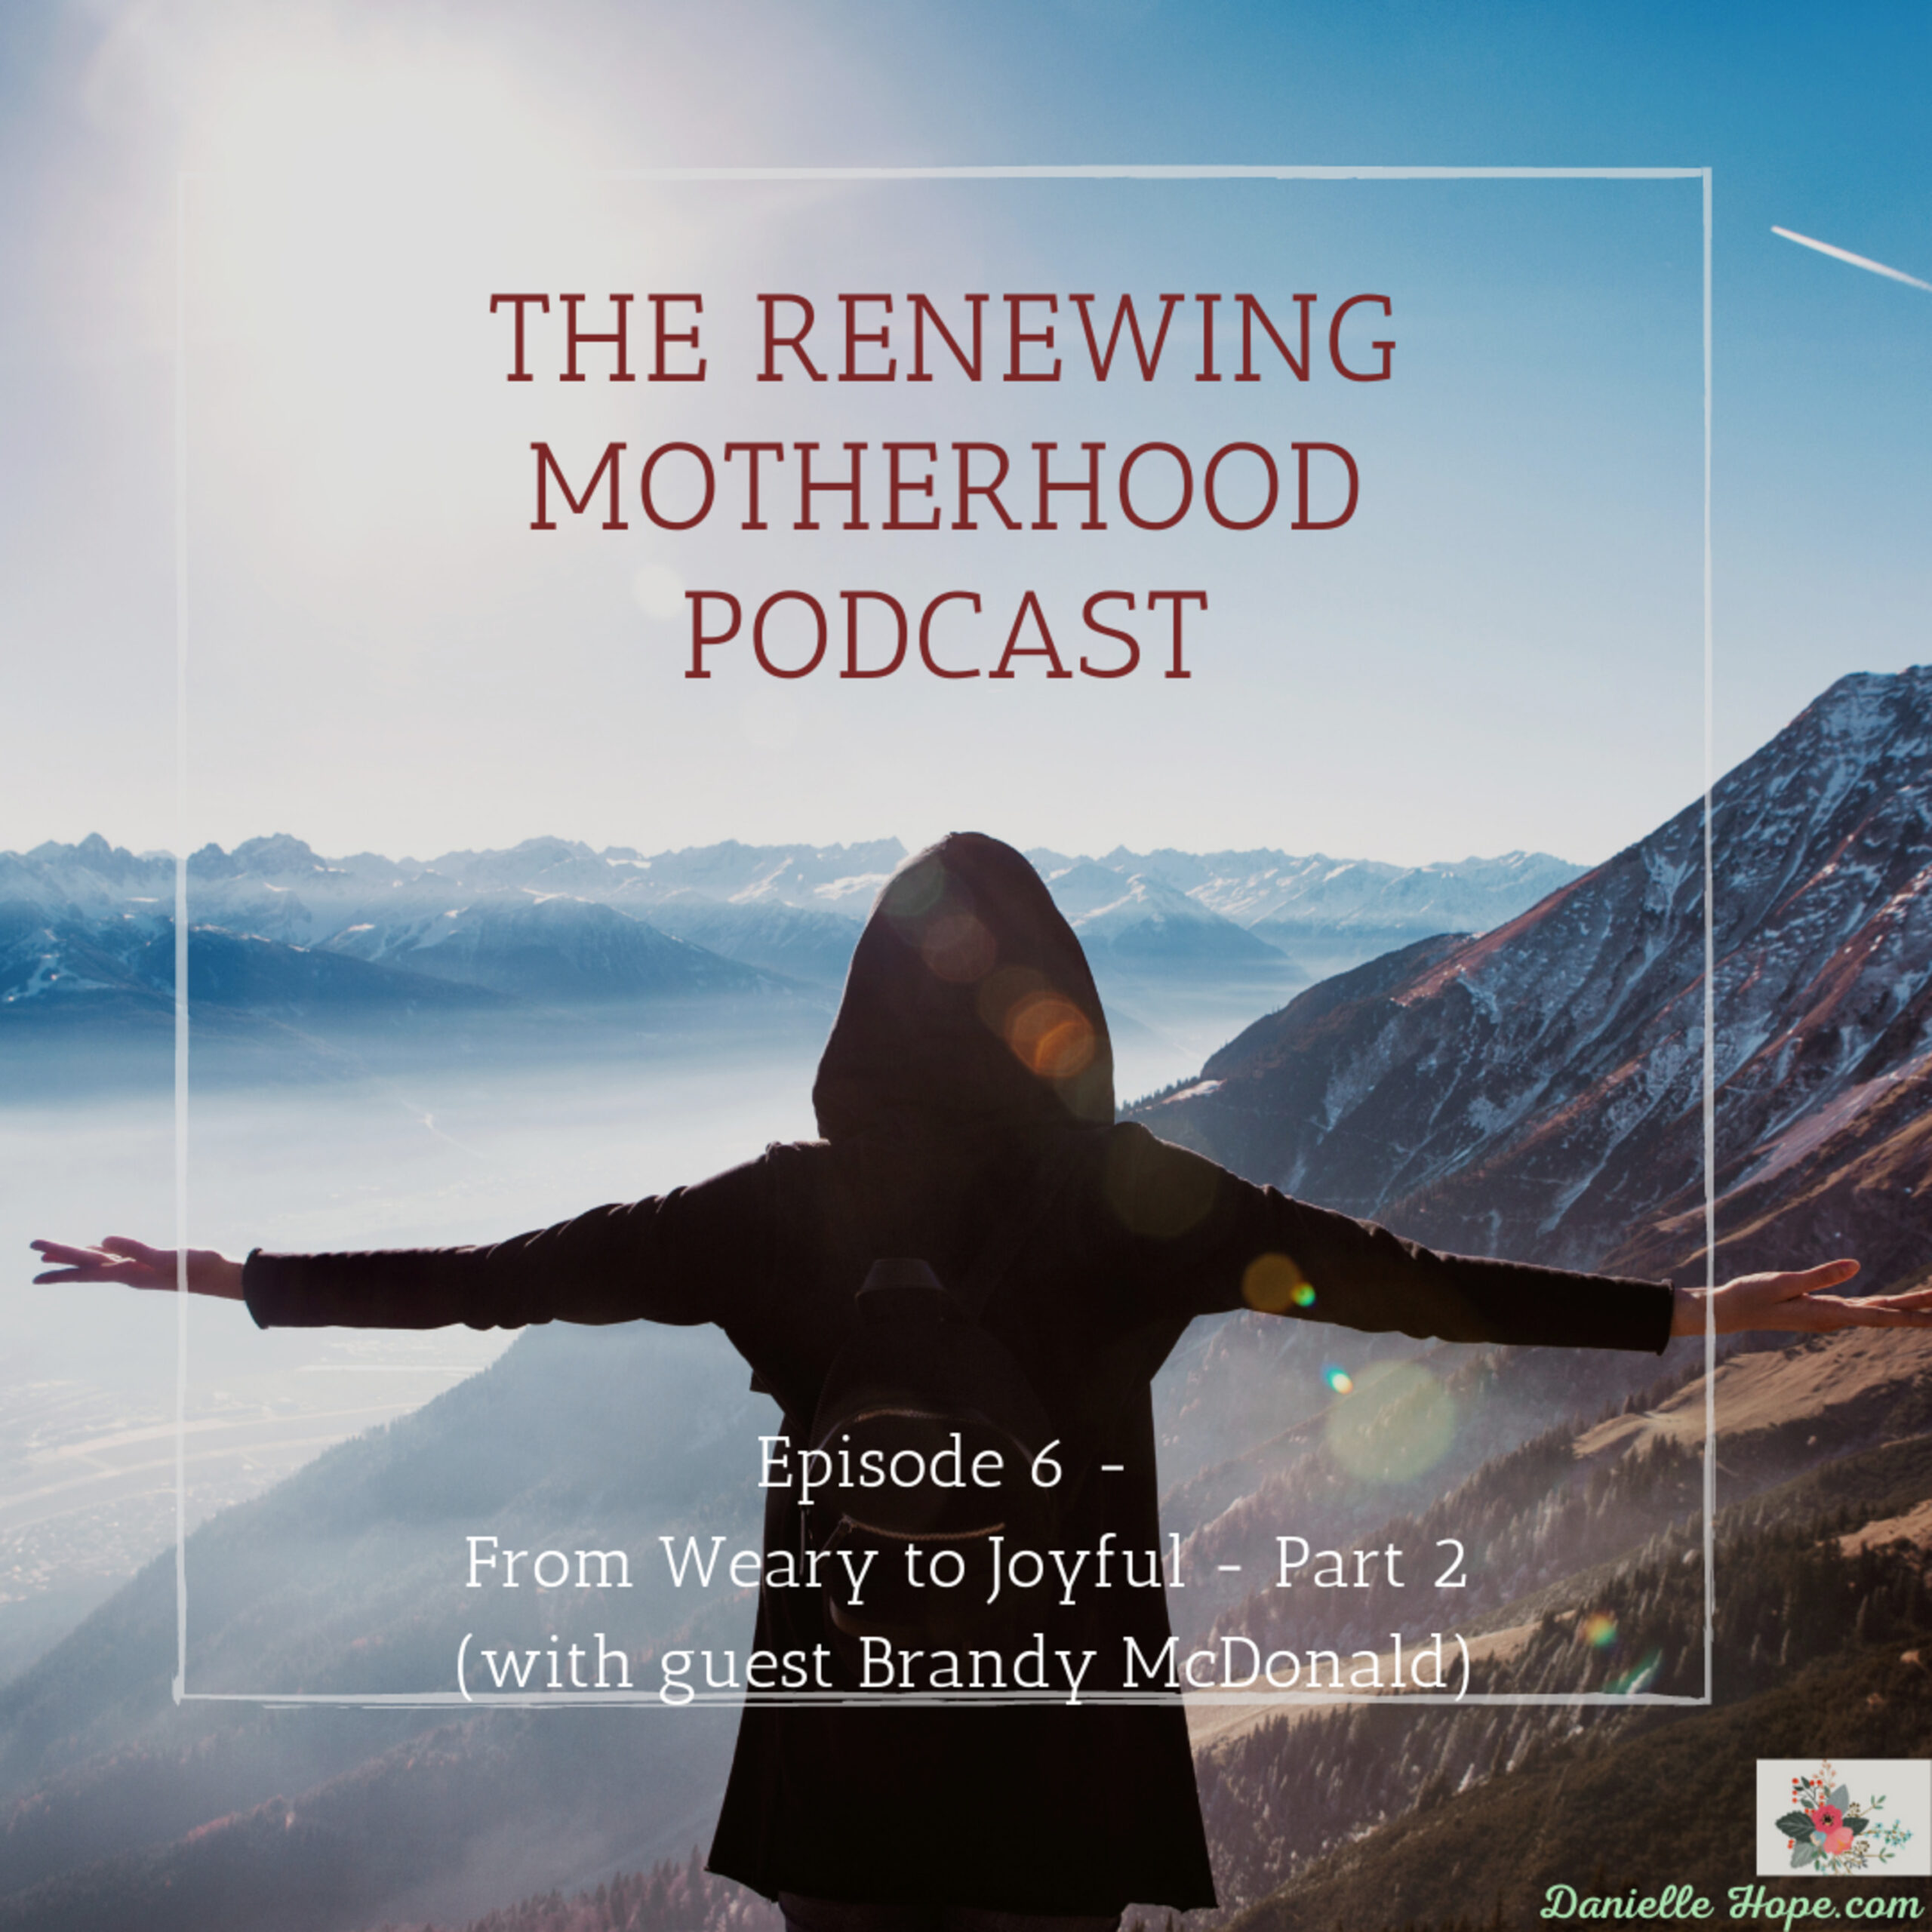 Episode 6 – Pressing On From Weary to Joyful Part 2 – (with Brandy McDonald)